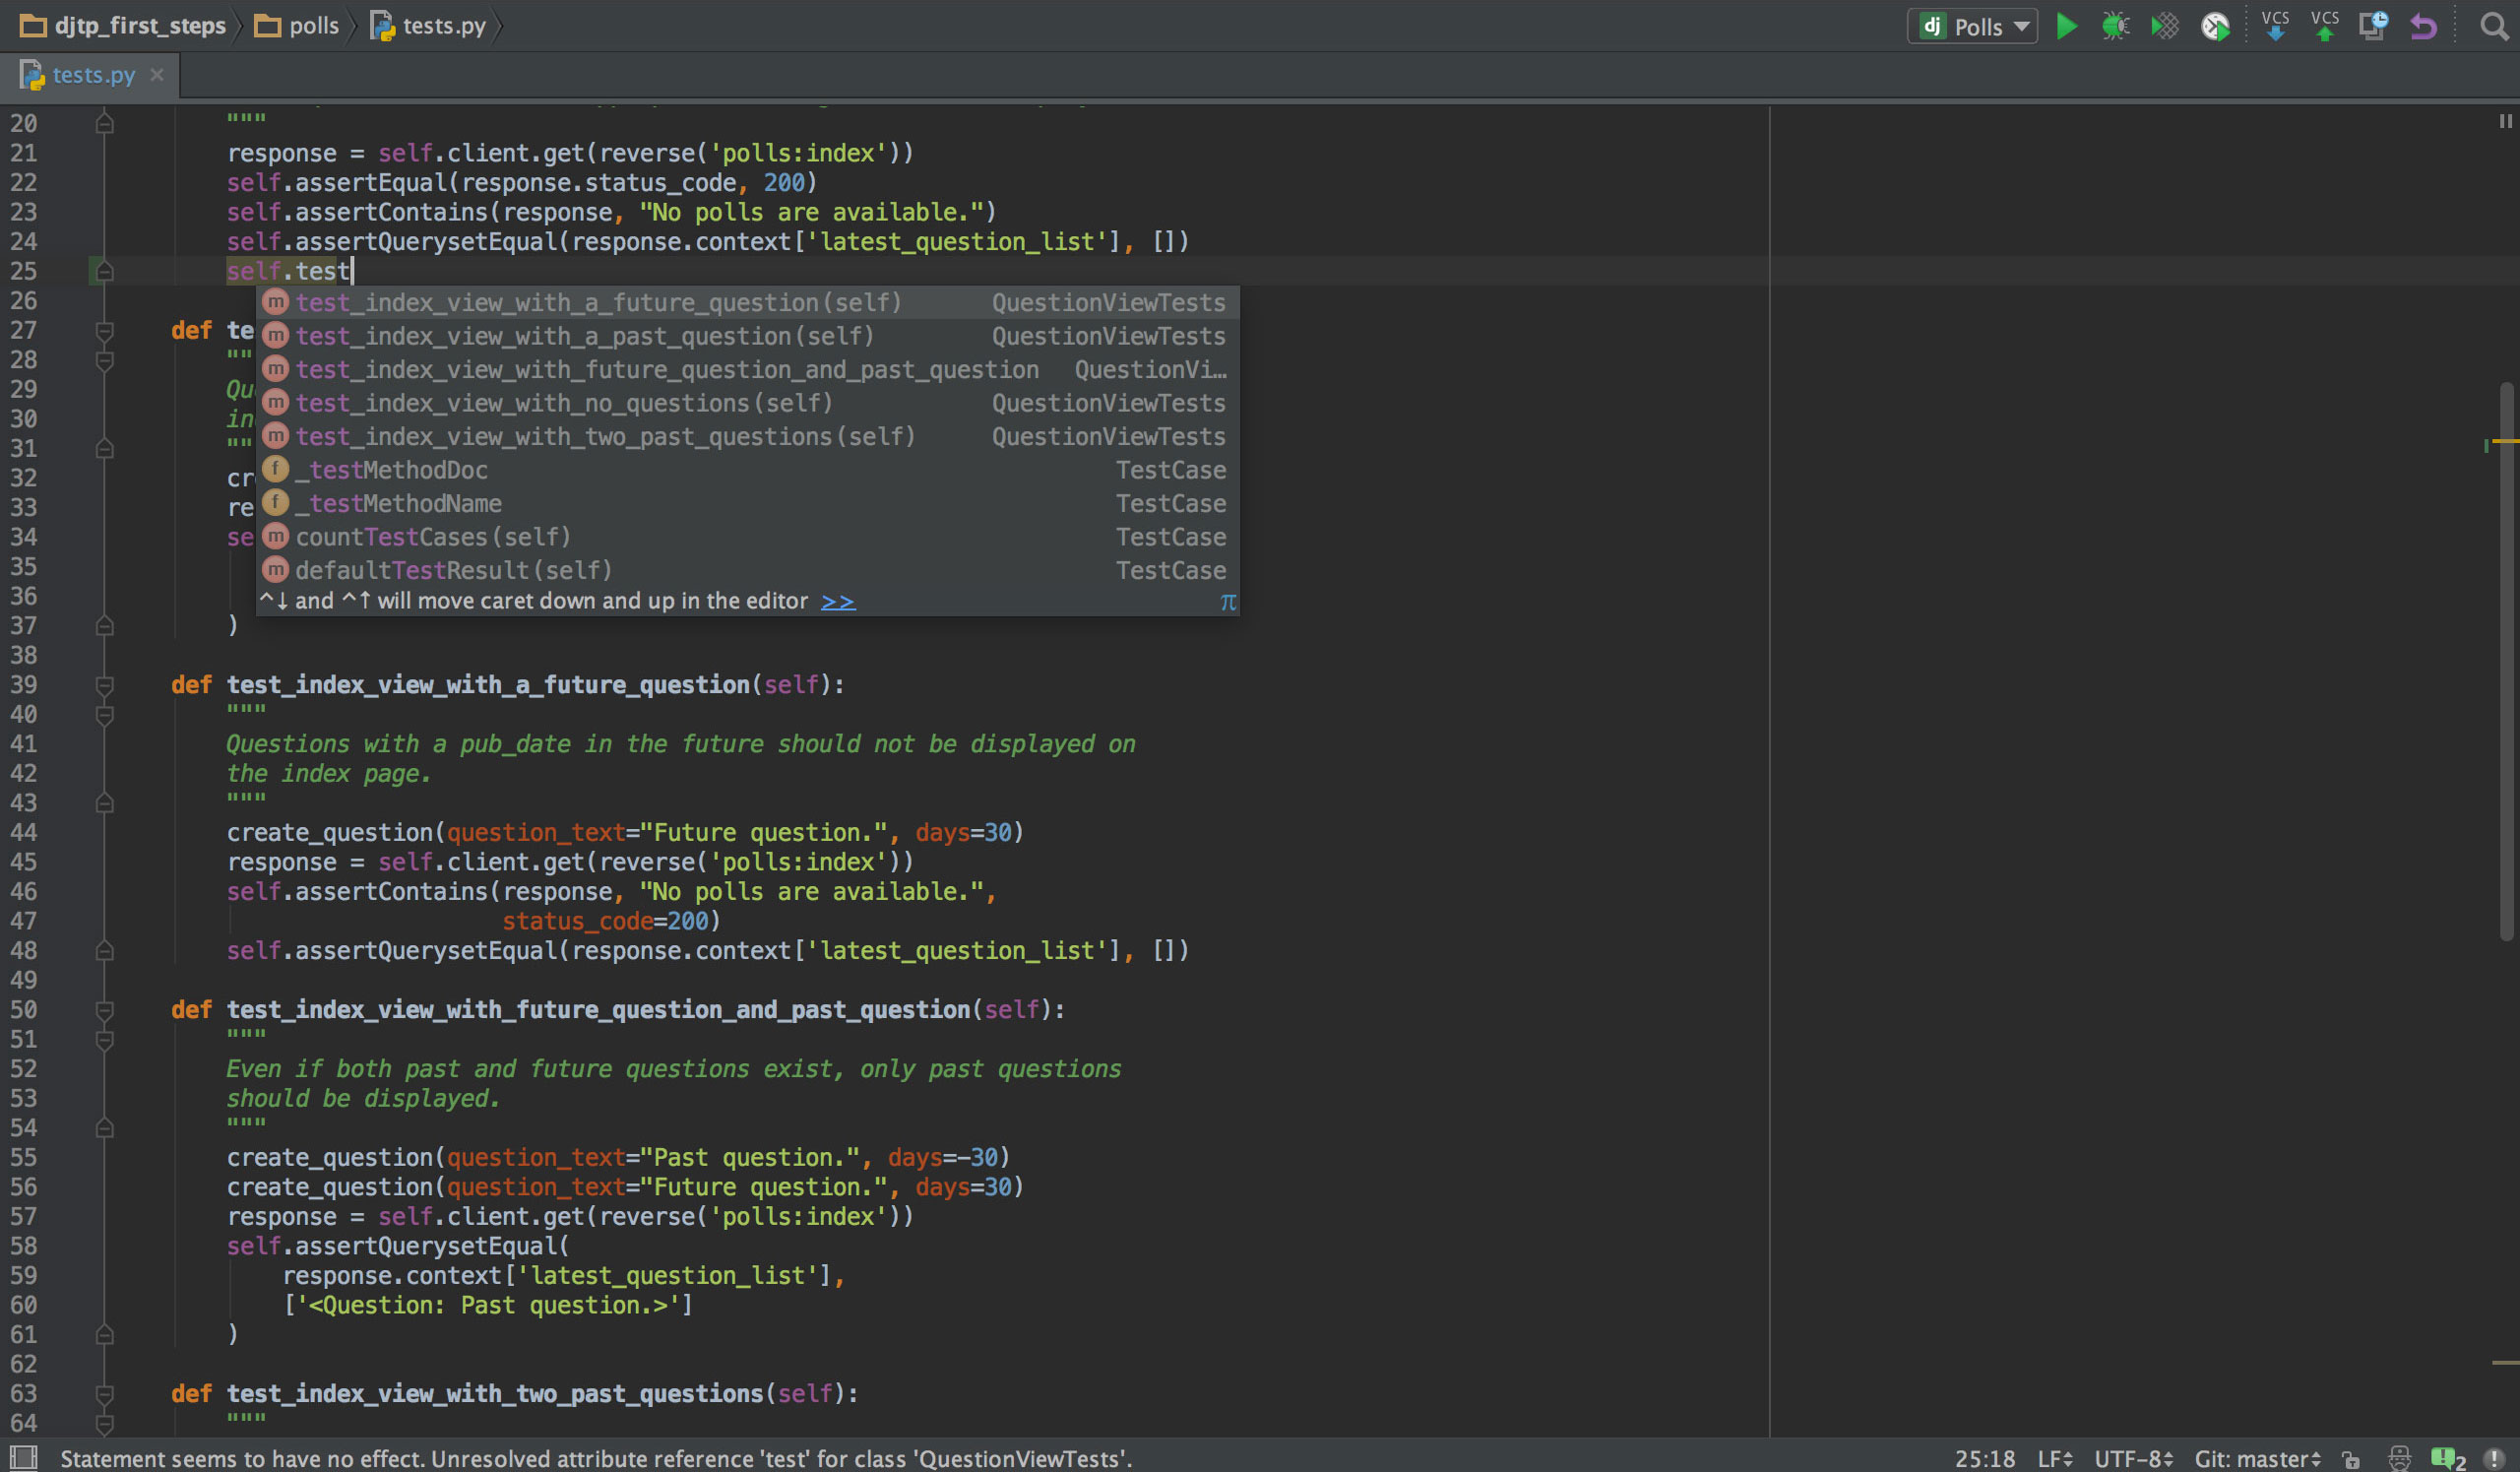 PyCharm-Community